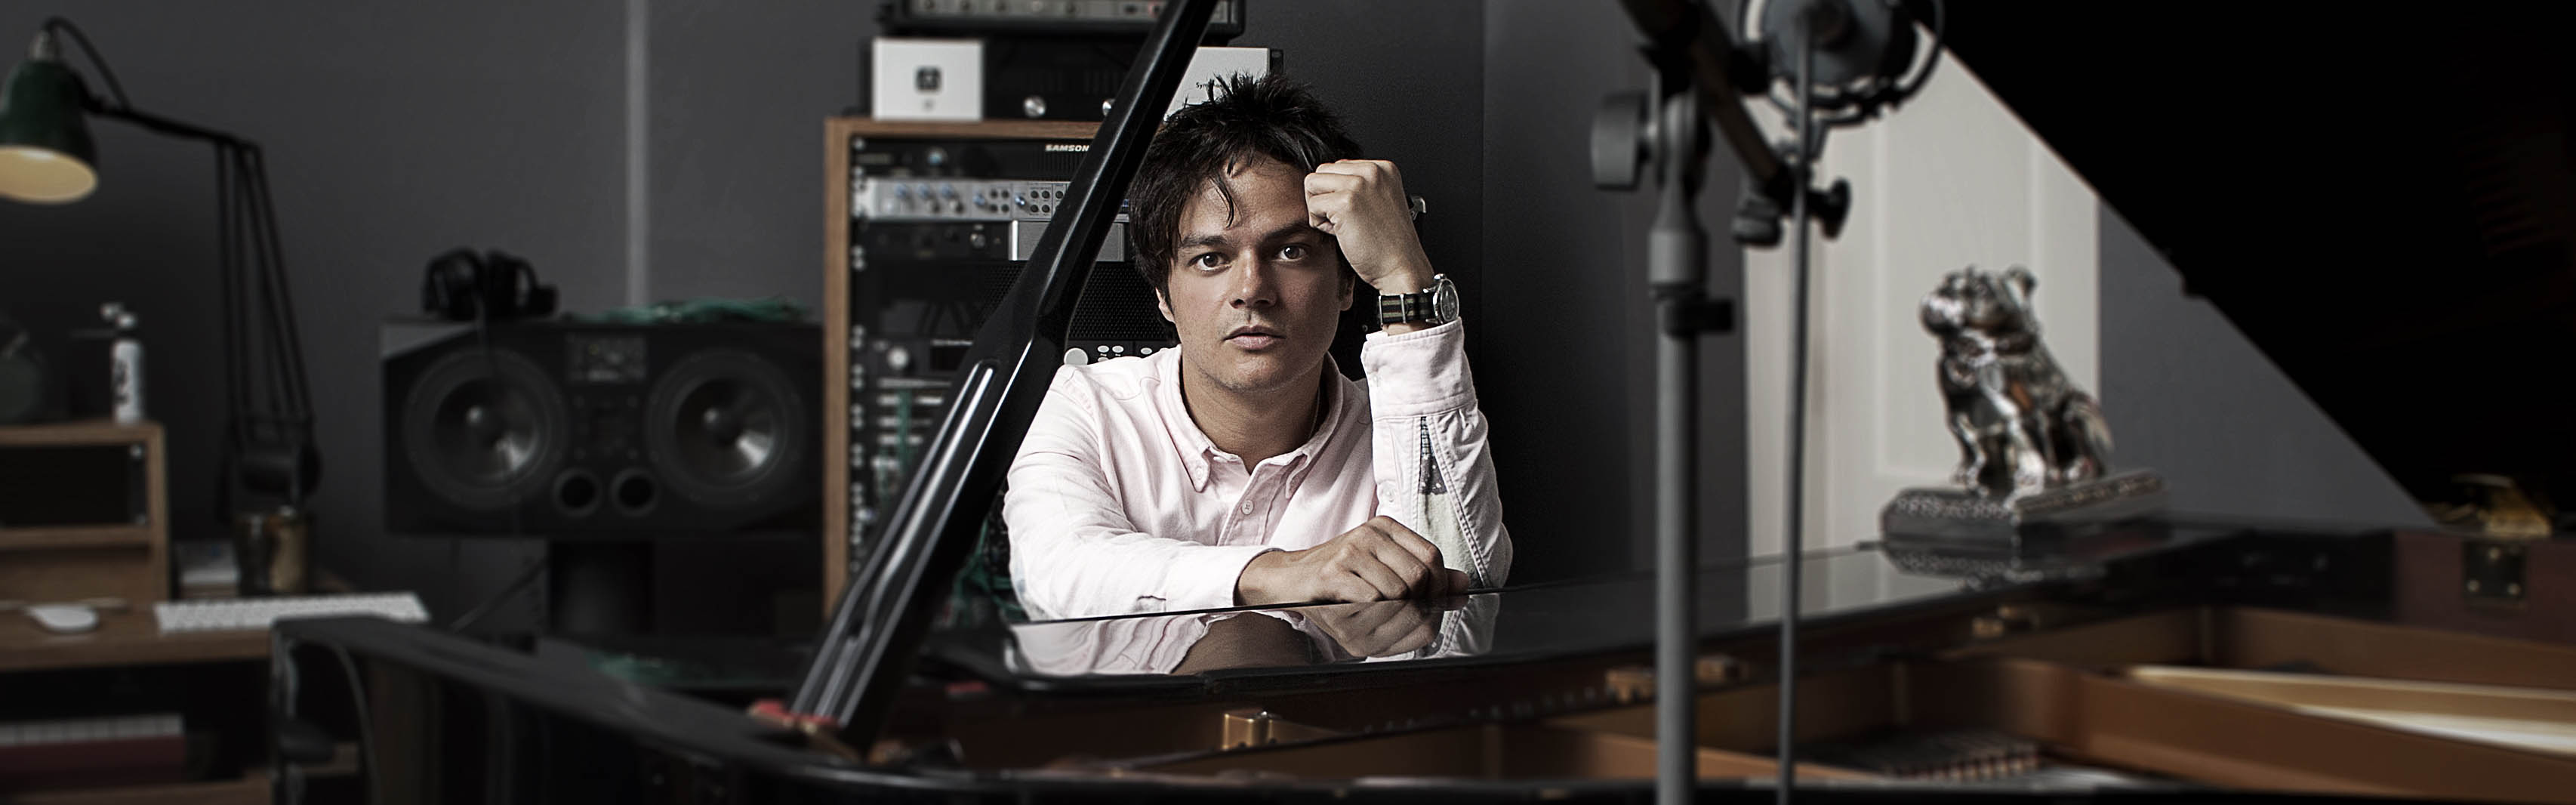 2014-10-06-Jamie Cullum3_Photocredit_McVirnEtienne